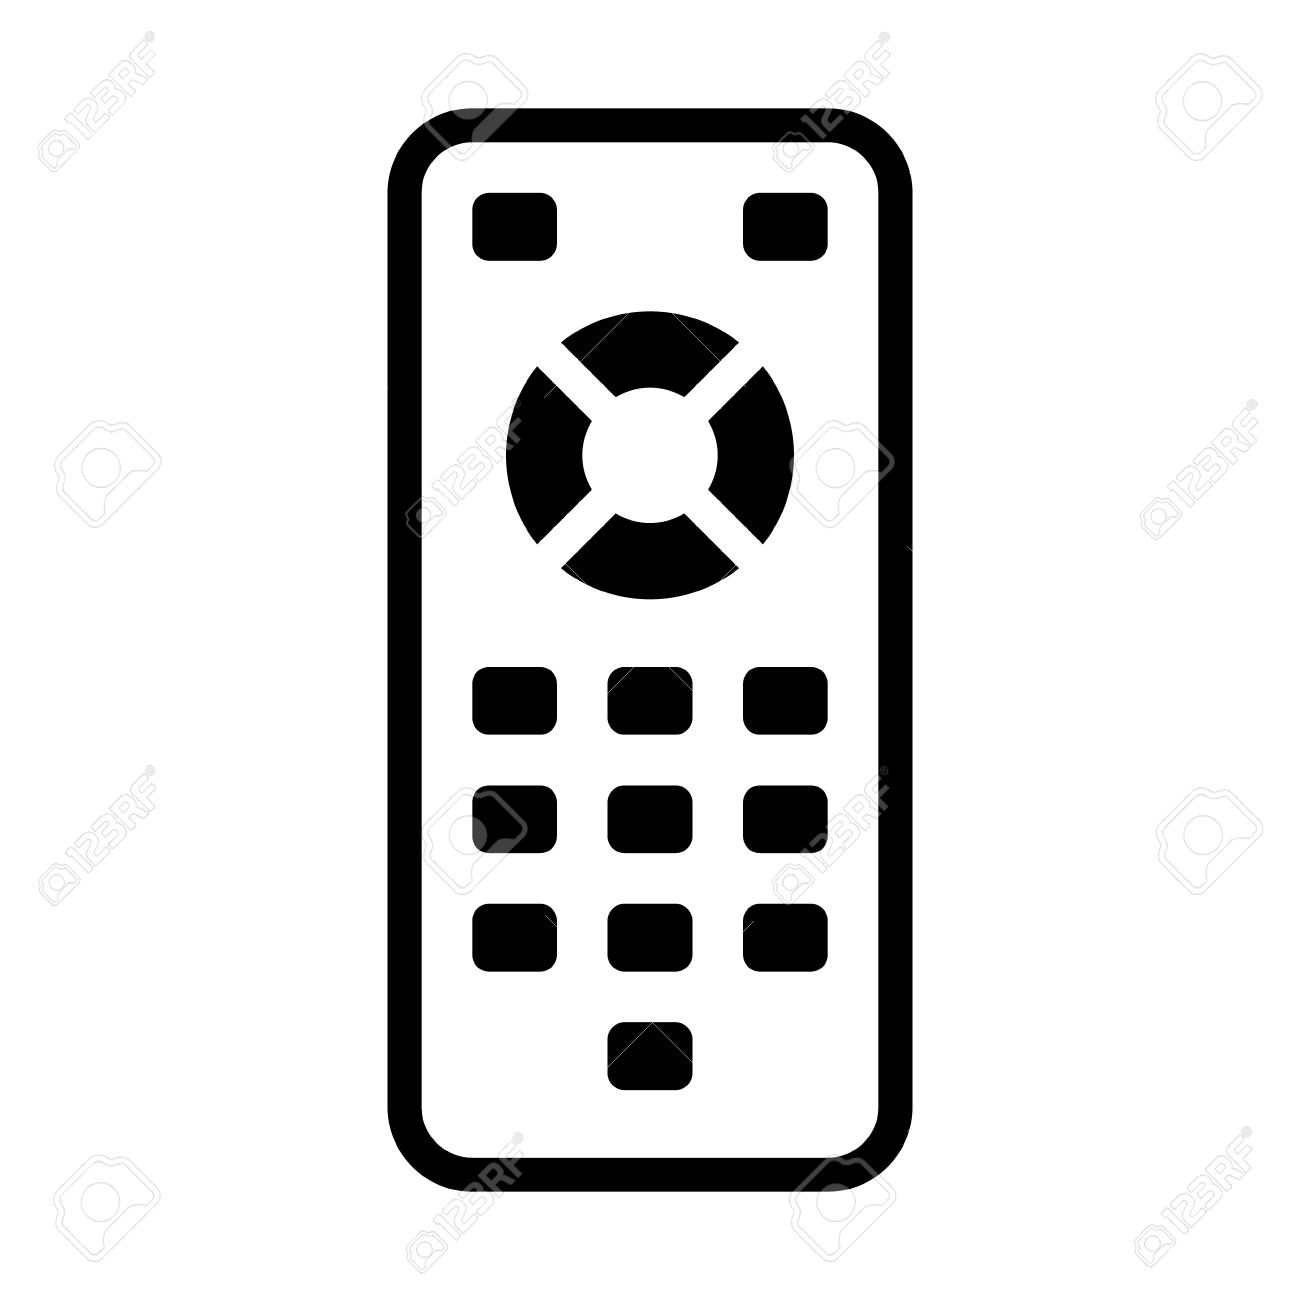 tv remote clipart. tv remote control line art icon for apps and websites stock vector - 50764932 tv clipart